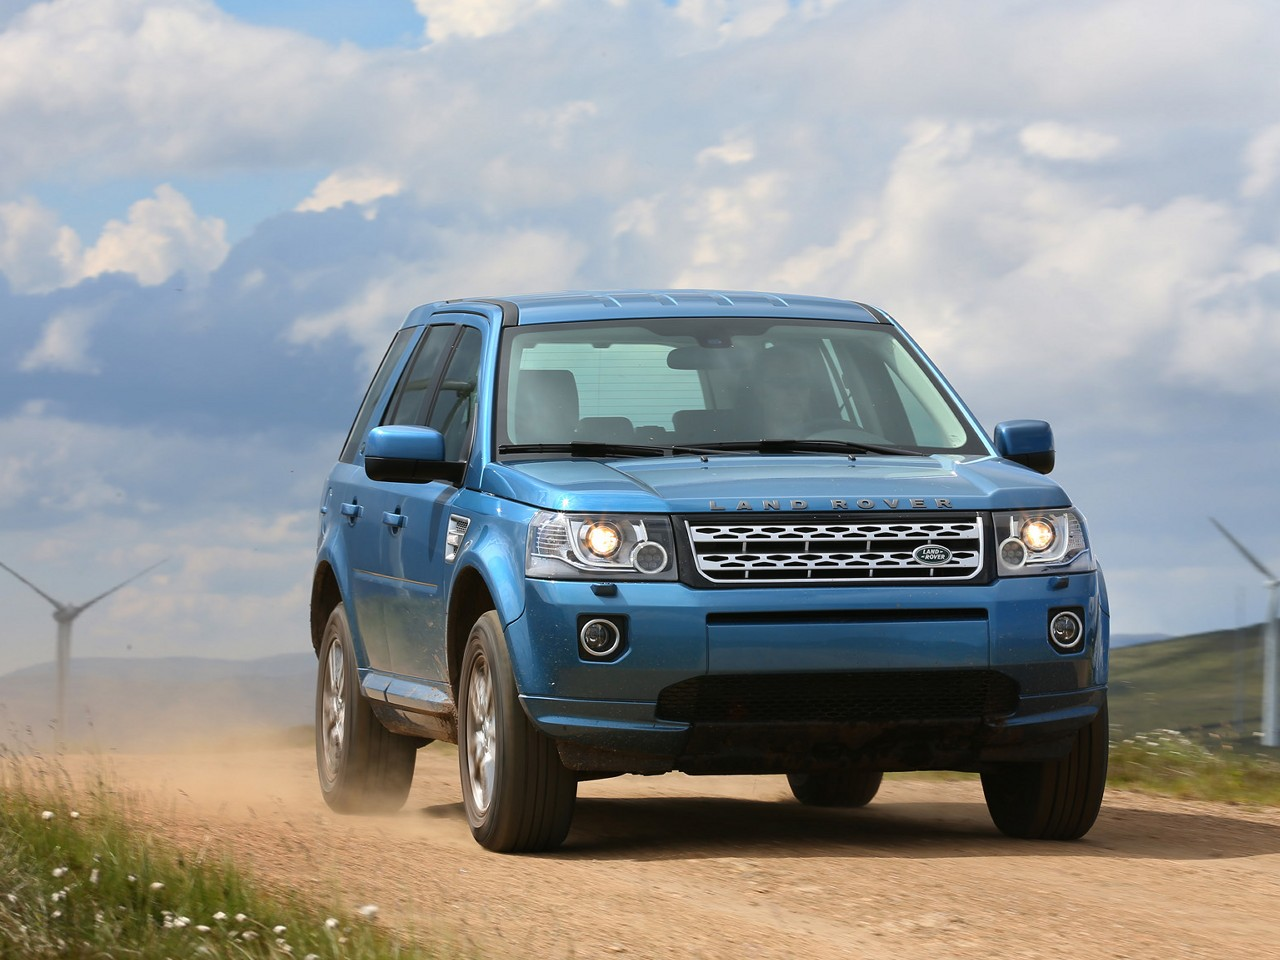 2013 land rover freelander 2 pictures specifications wallpapers interiors and exteriors. Black Bedroom Furniture Sets. Home Design Ideas